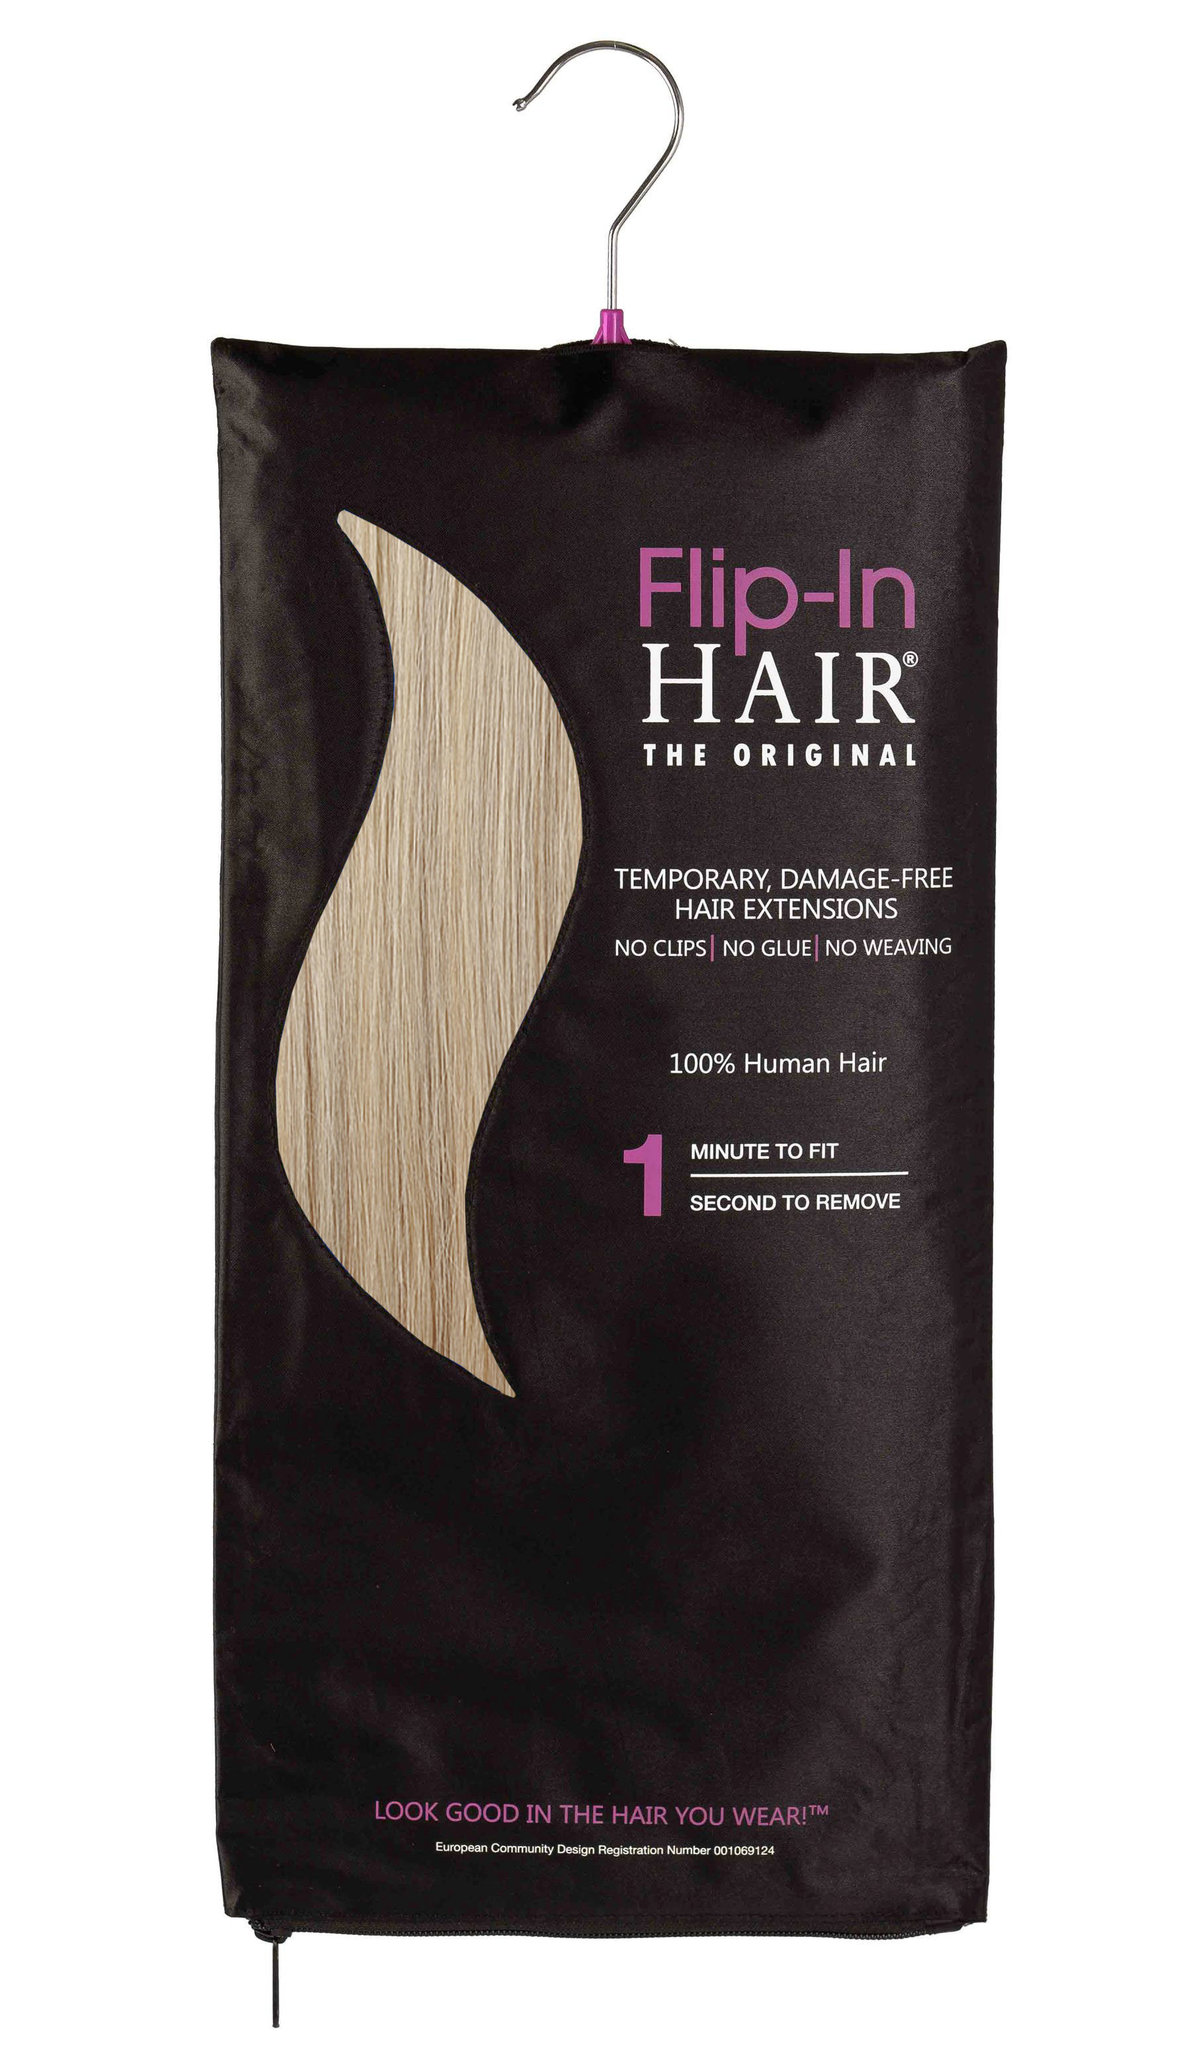 Flip-In Hair Original 12-613-613